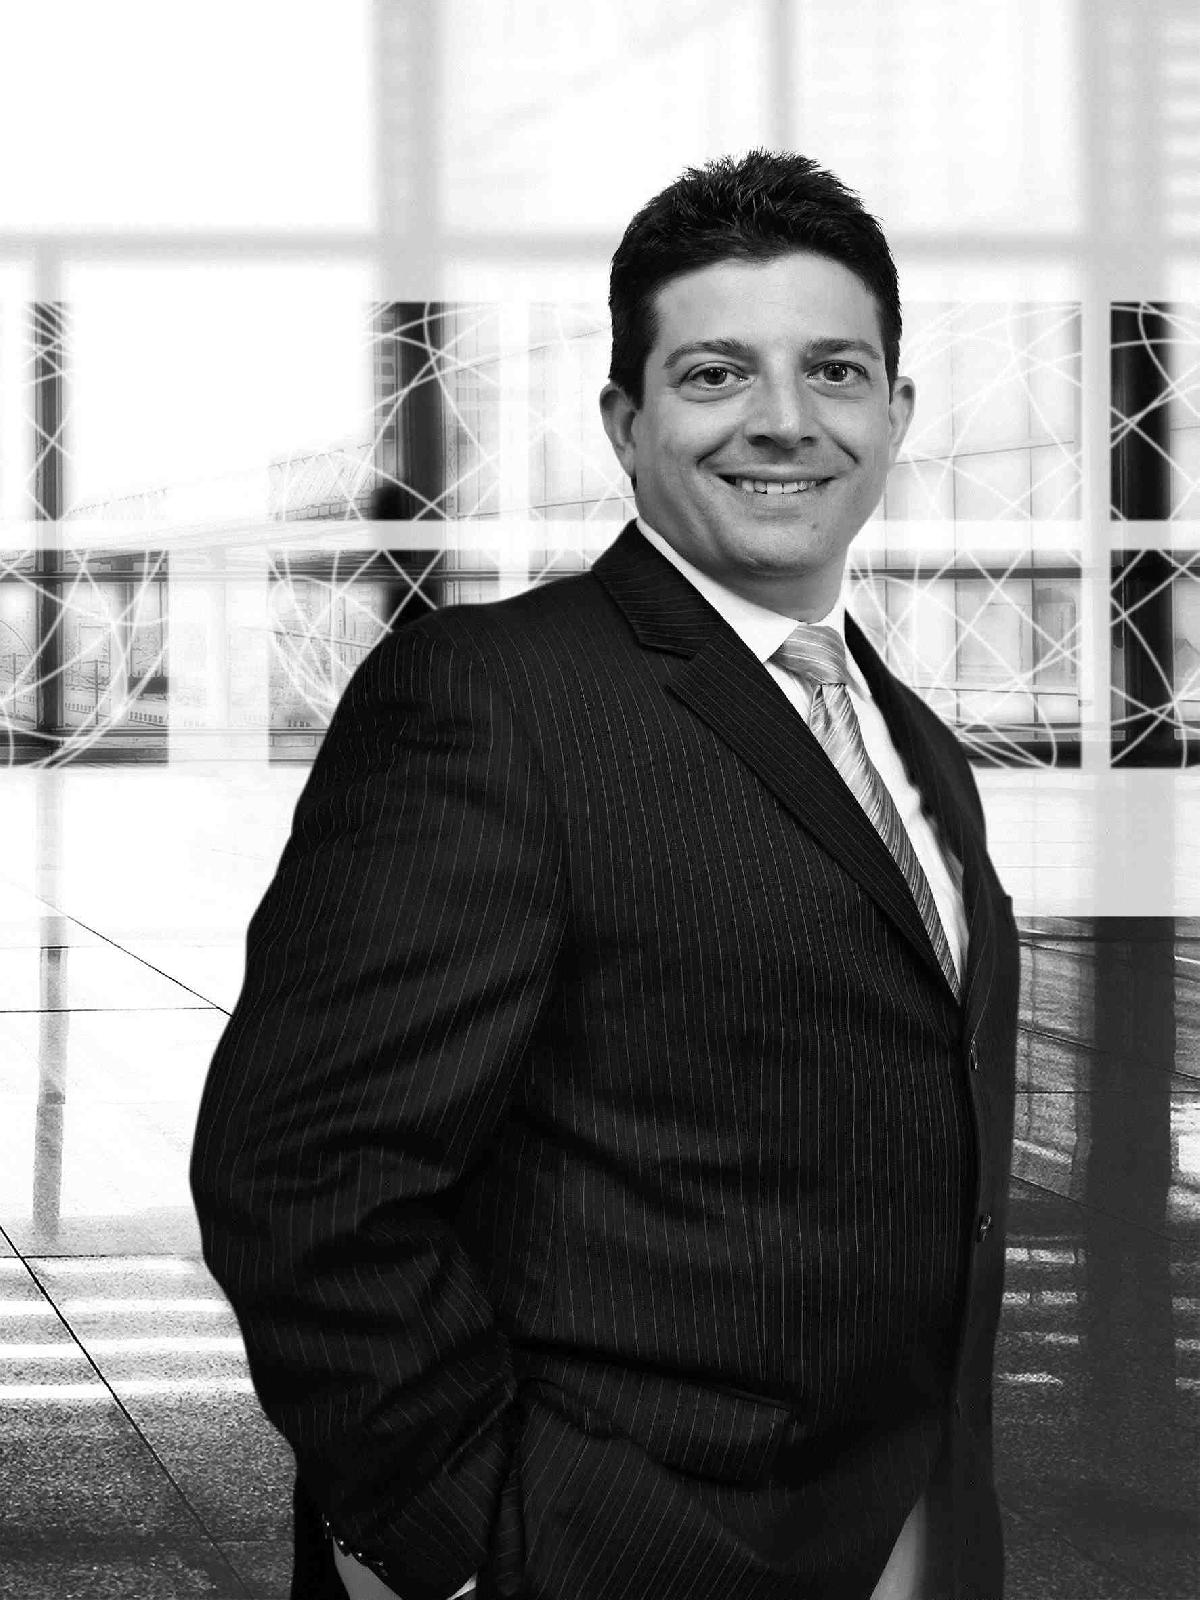 Glander International Bunkering appoints Mr. Maurice Lara as Bunker & Lubricant Trader to the Florida office